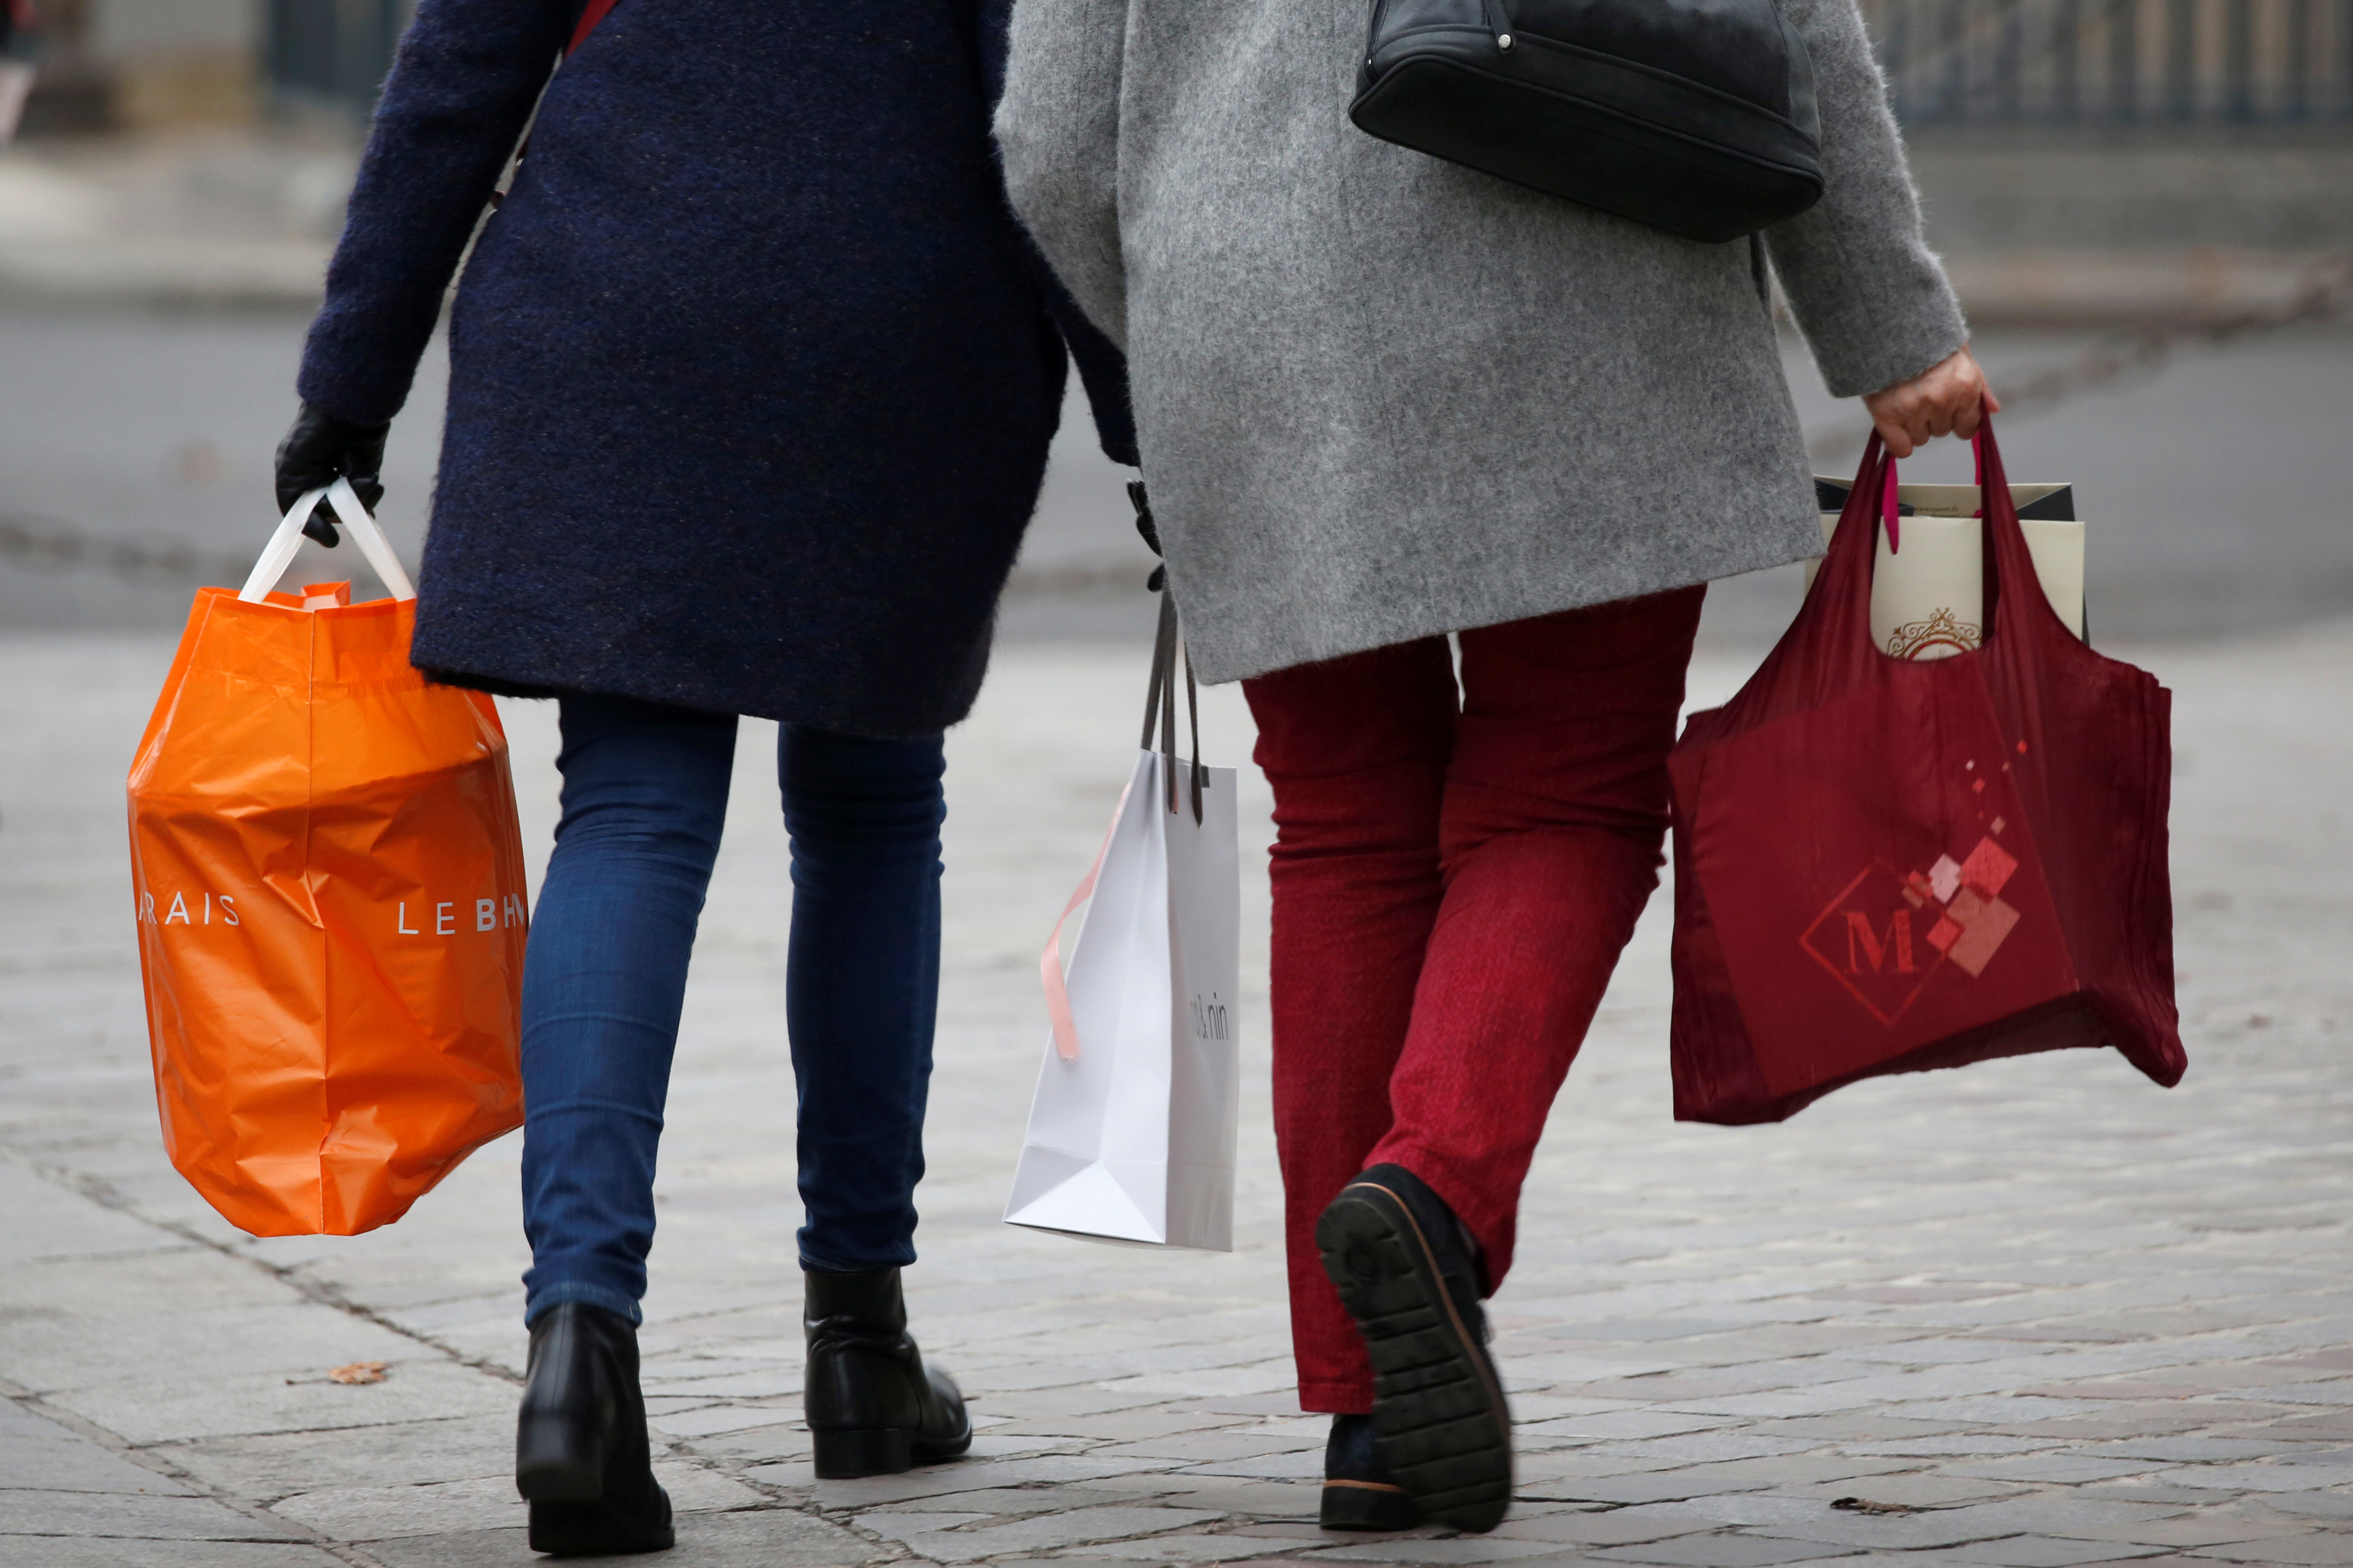 Shoppers walk with shopping bags as they take care of their last-minute Christmas holiday gift purchases outside department stores in Paris, France, December 23, 2016.  REUTERS/Charles Platiau